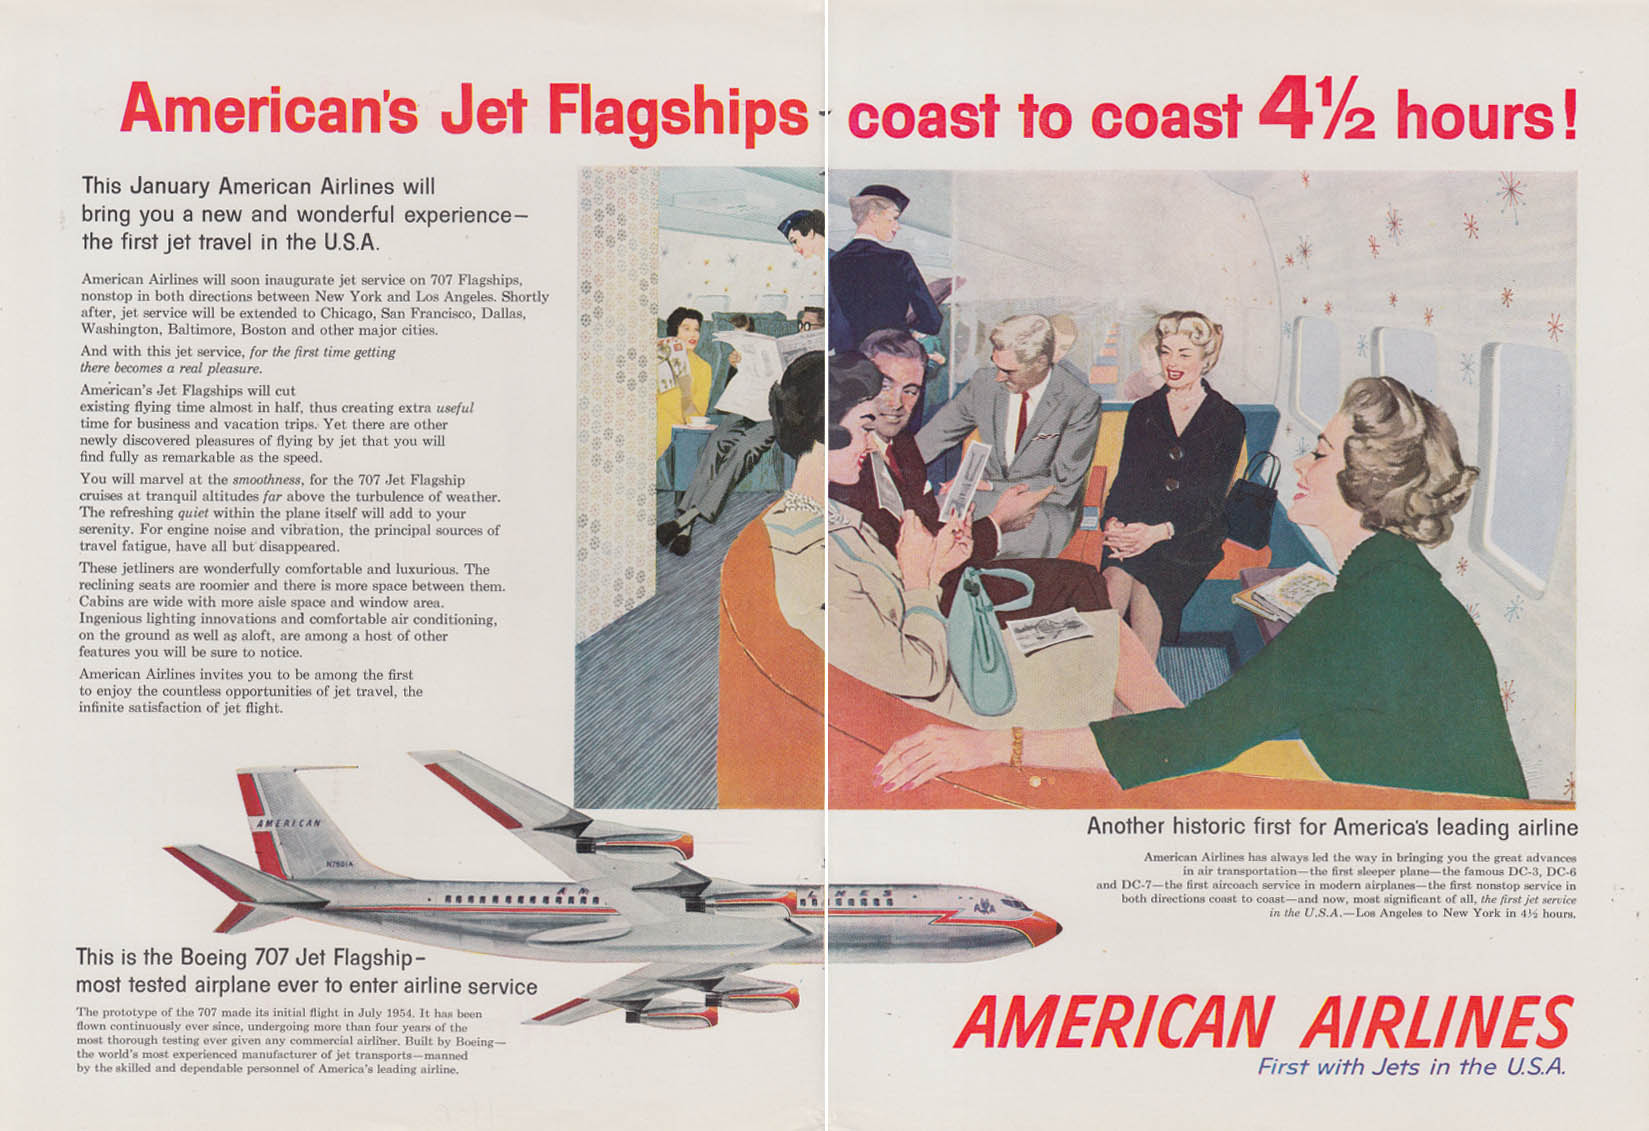 American Airlines Boeing 707 Flagships coast to coast 4 1/2 hours! Ad 1958